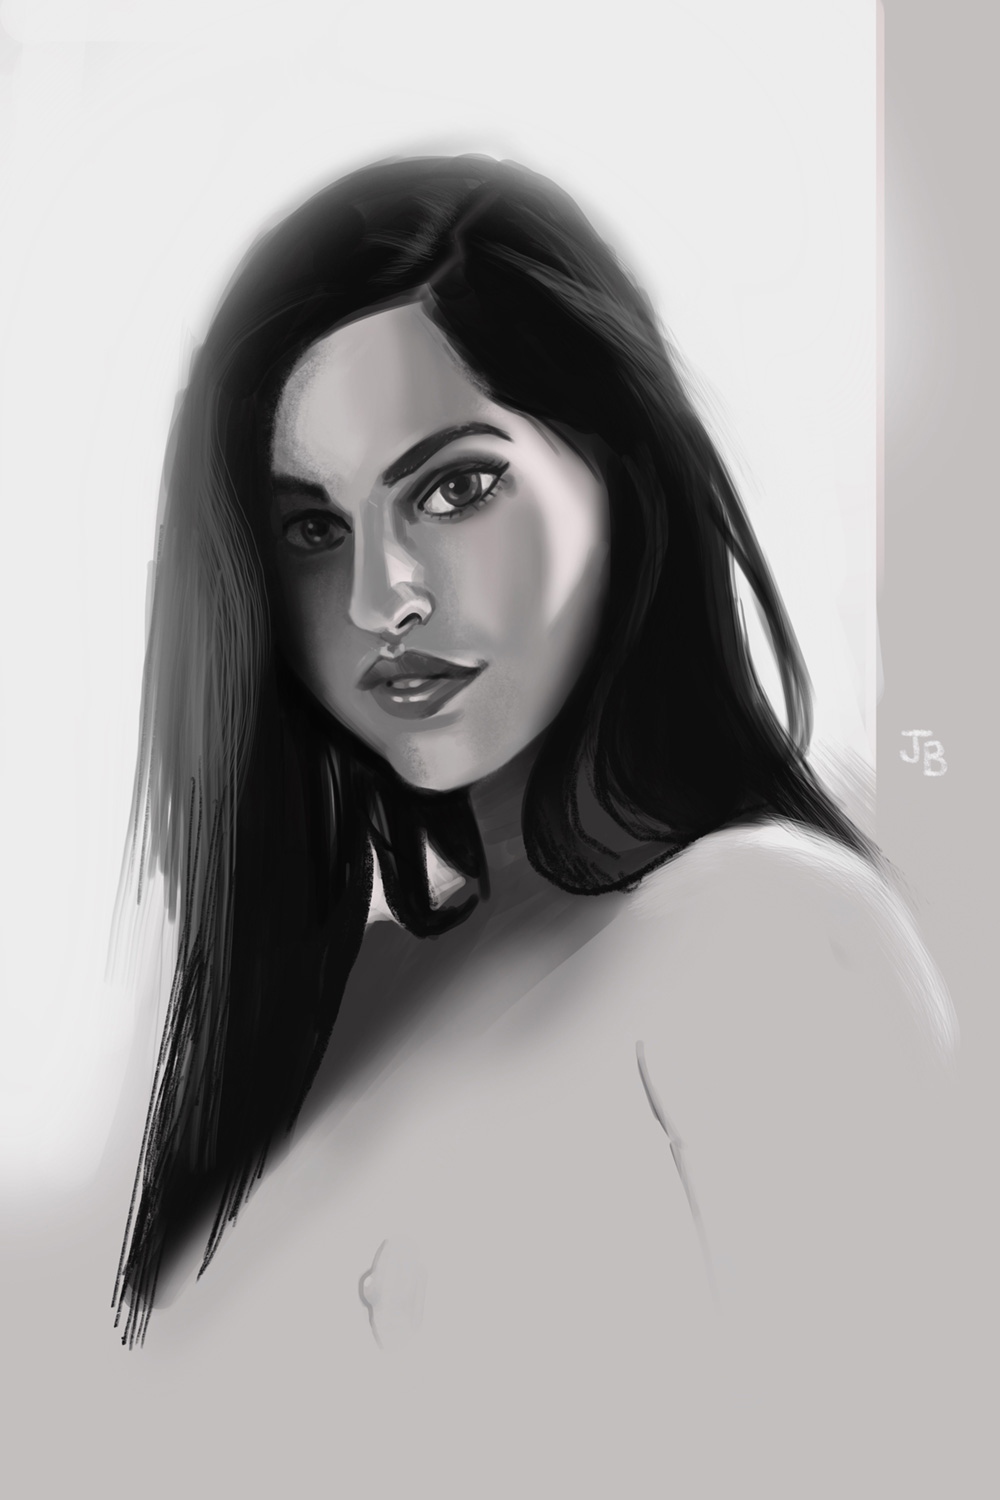 portrait study of Nesty from SuicideGirls. Drawn in Photoshop and Procreate.